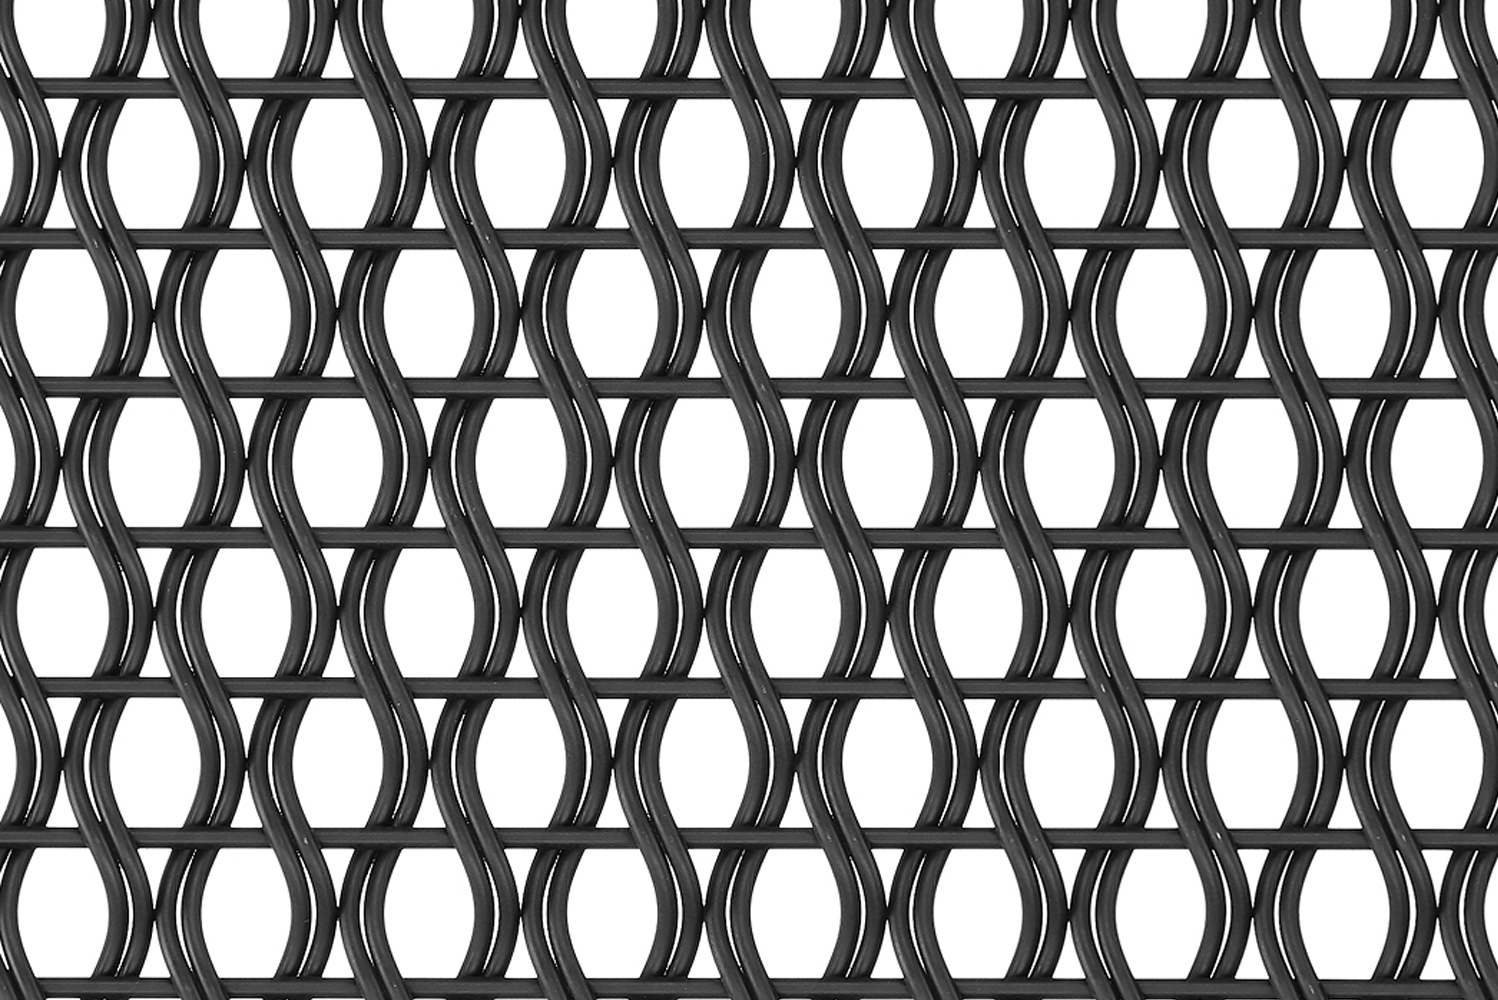 Introducing the latest wire mesh pattern from Banker Wire.